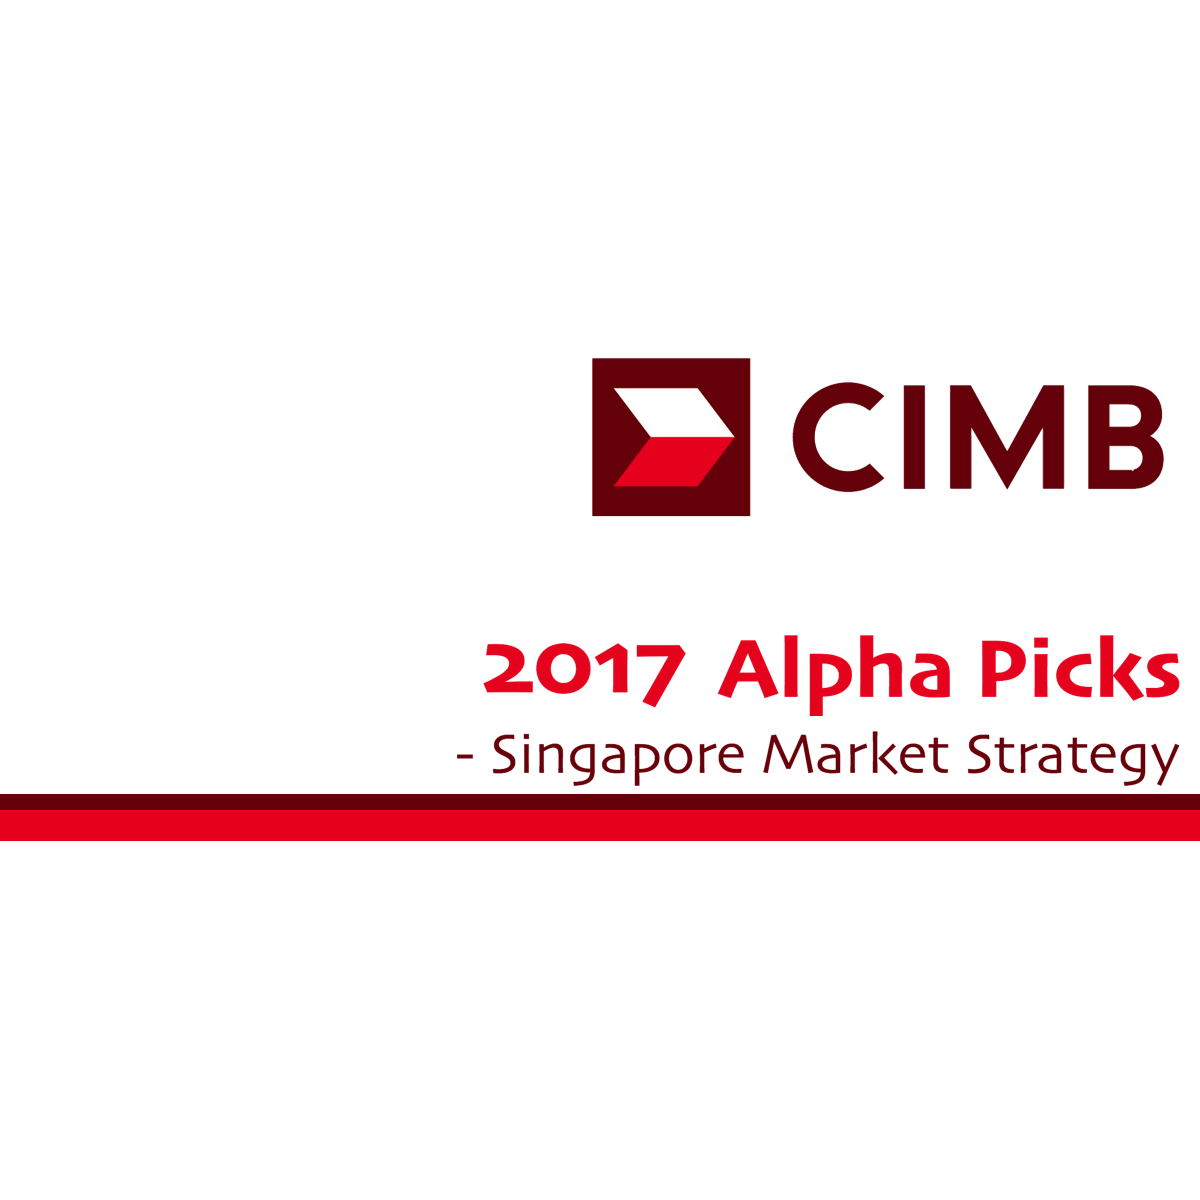 Singapore Alpha Picks For 2017 - CIMB Research 2017-05-30: Analysts' Alpha Picks For 2017 (Large Cap)